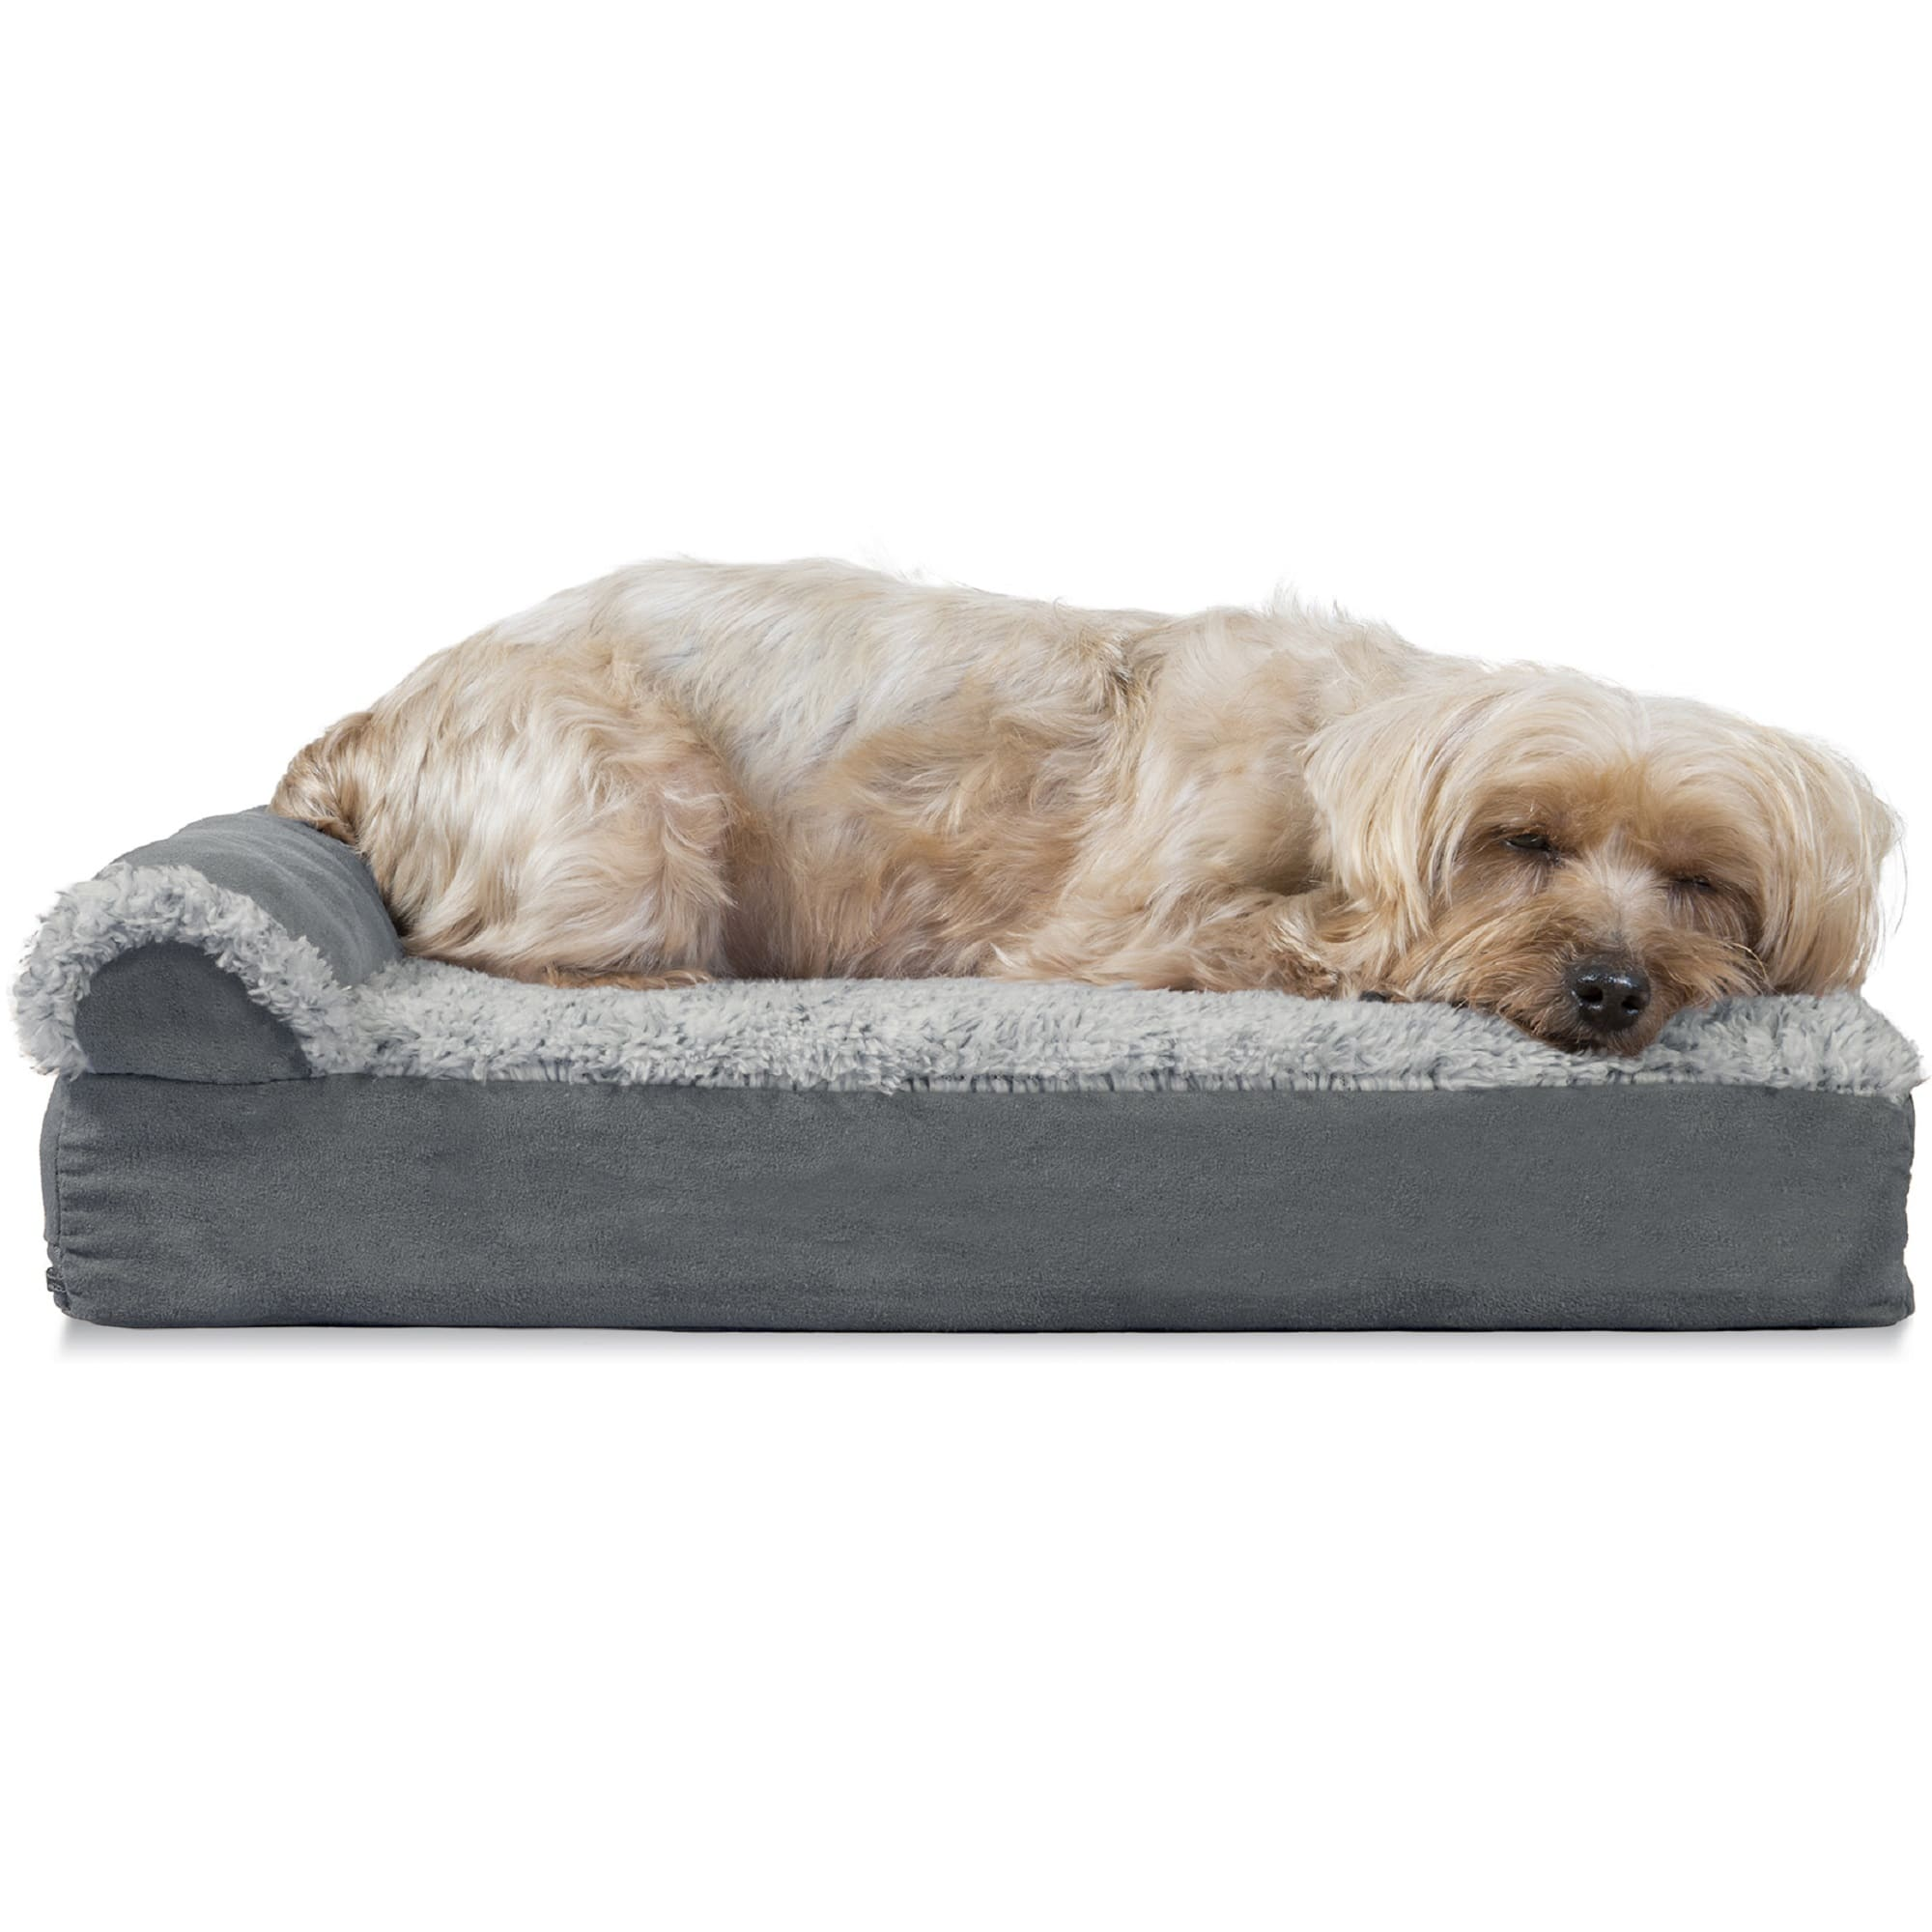 Furhaven Two Tone Faux Fur Suede Deluxe Chaise Lounge Orthopedic Sofa Dog Bed Stone Gray 20 L X 15 W Petco